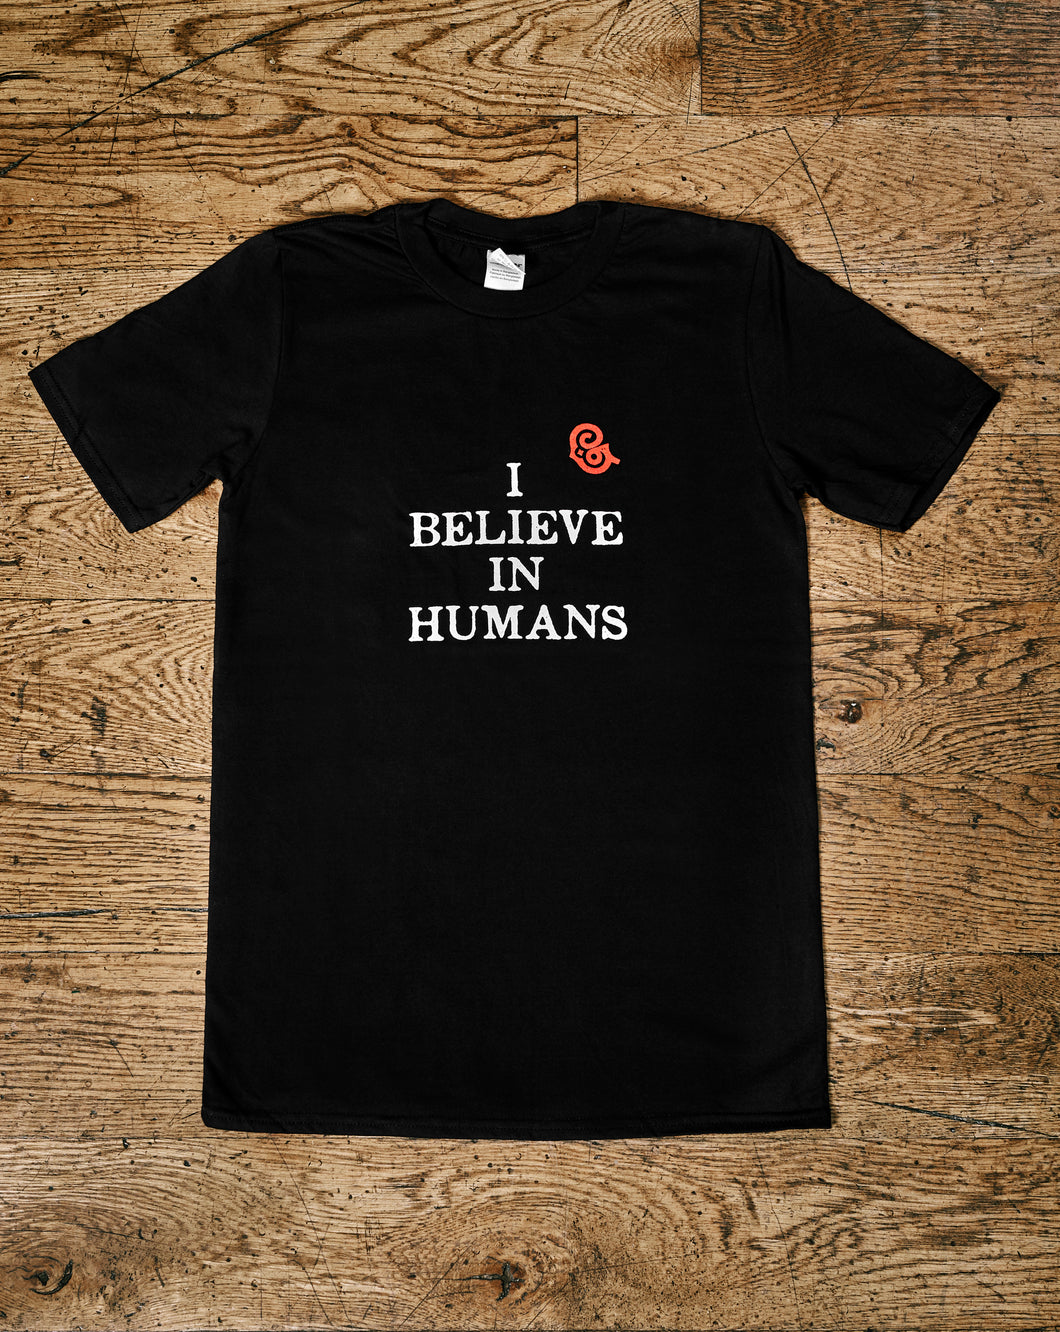 Human Disguise - I believe in humans - Elf Size (Human Child Equivalent)